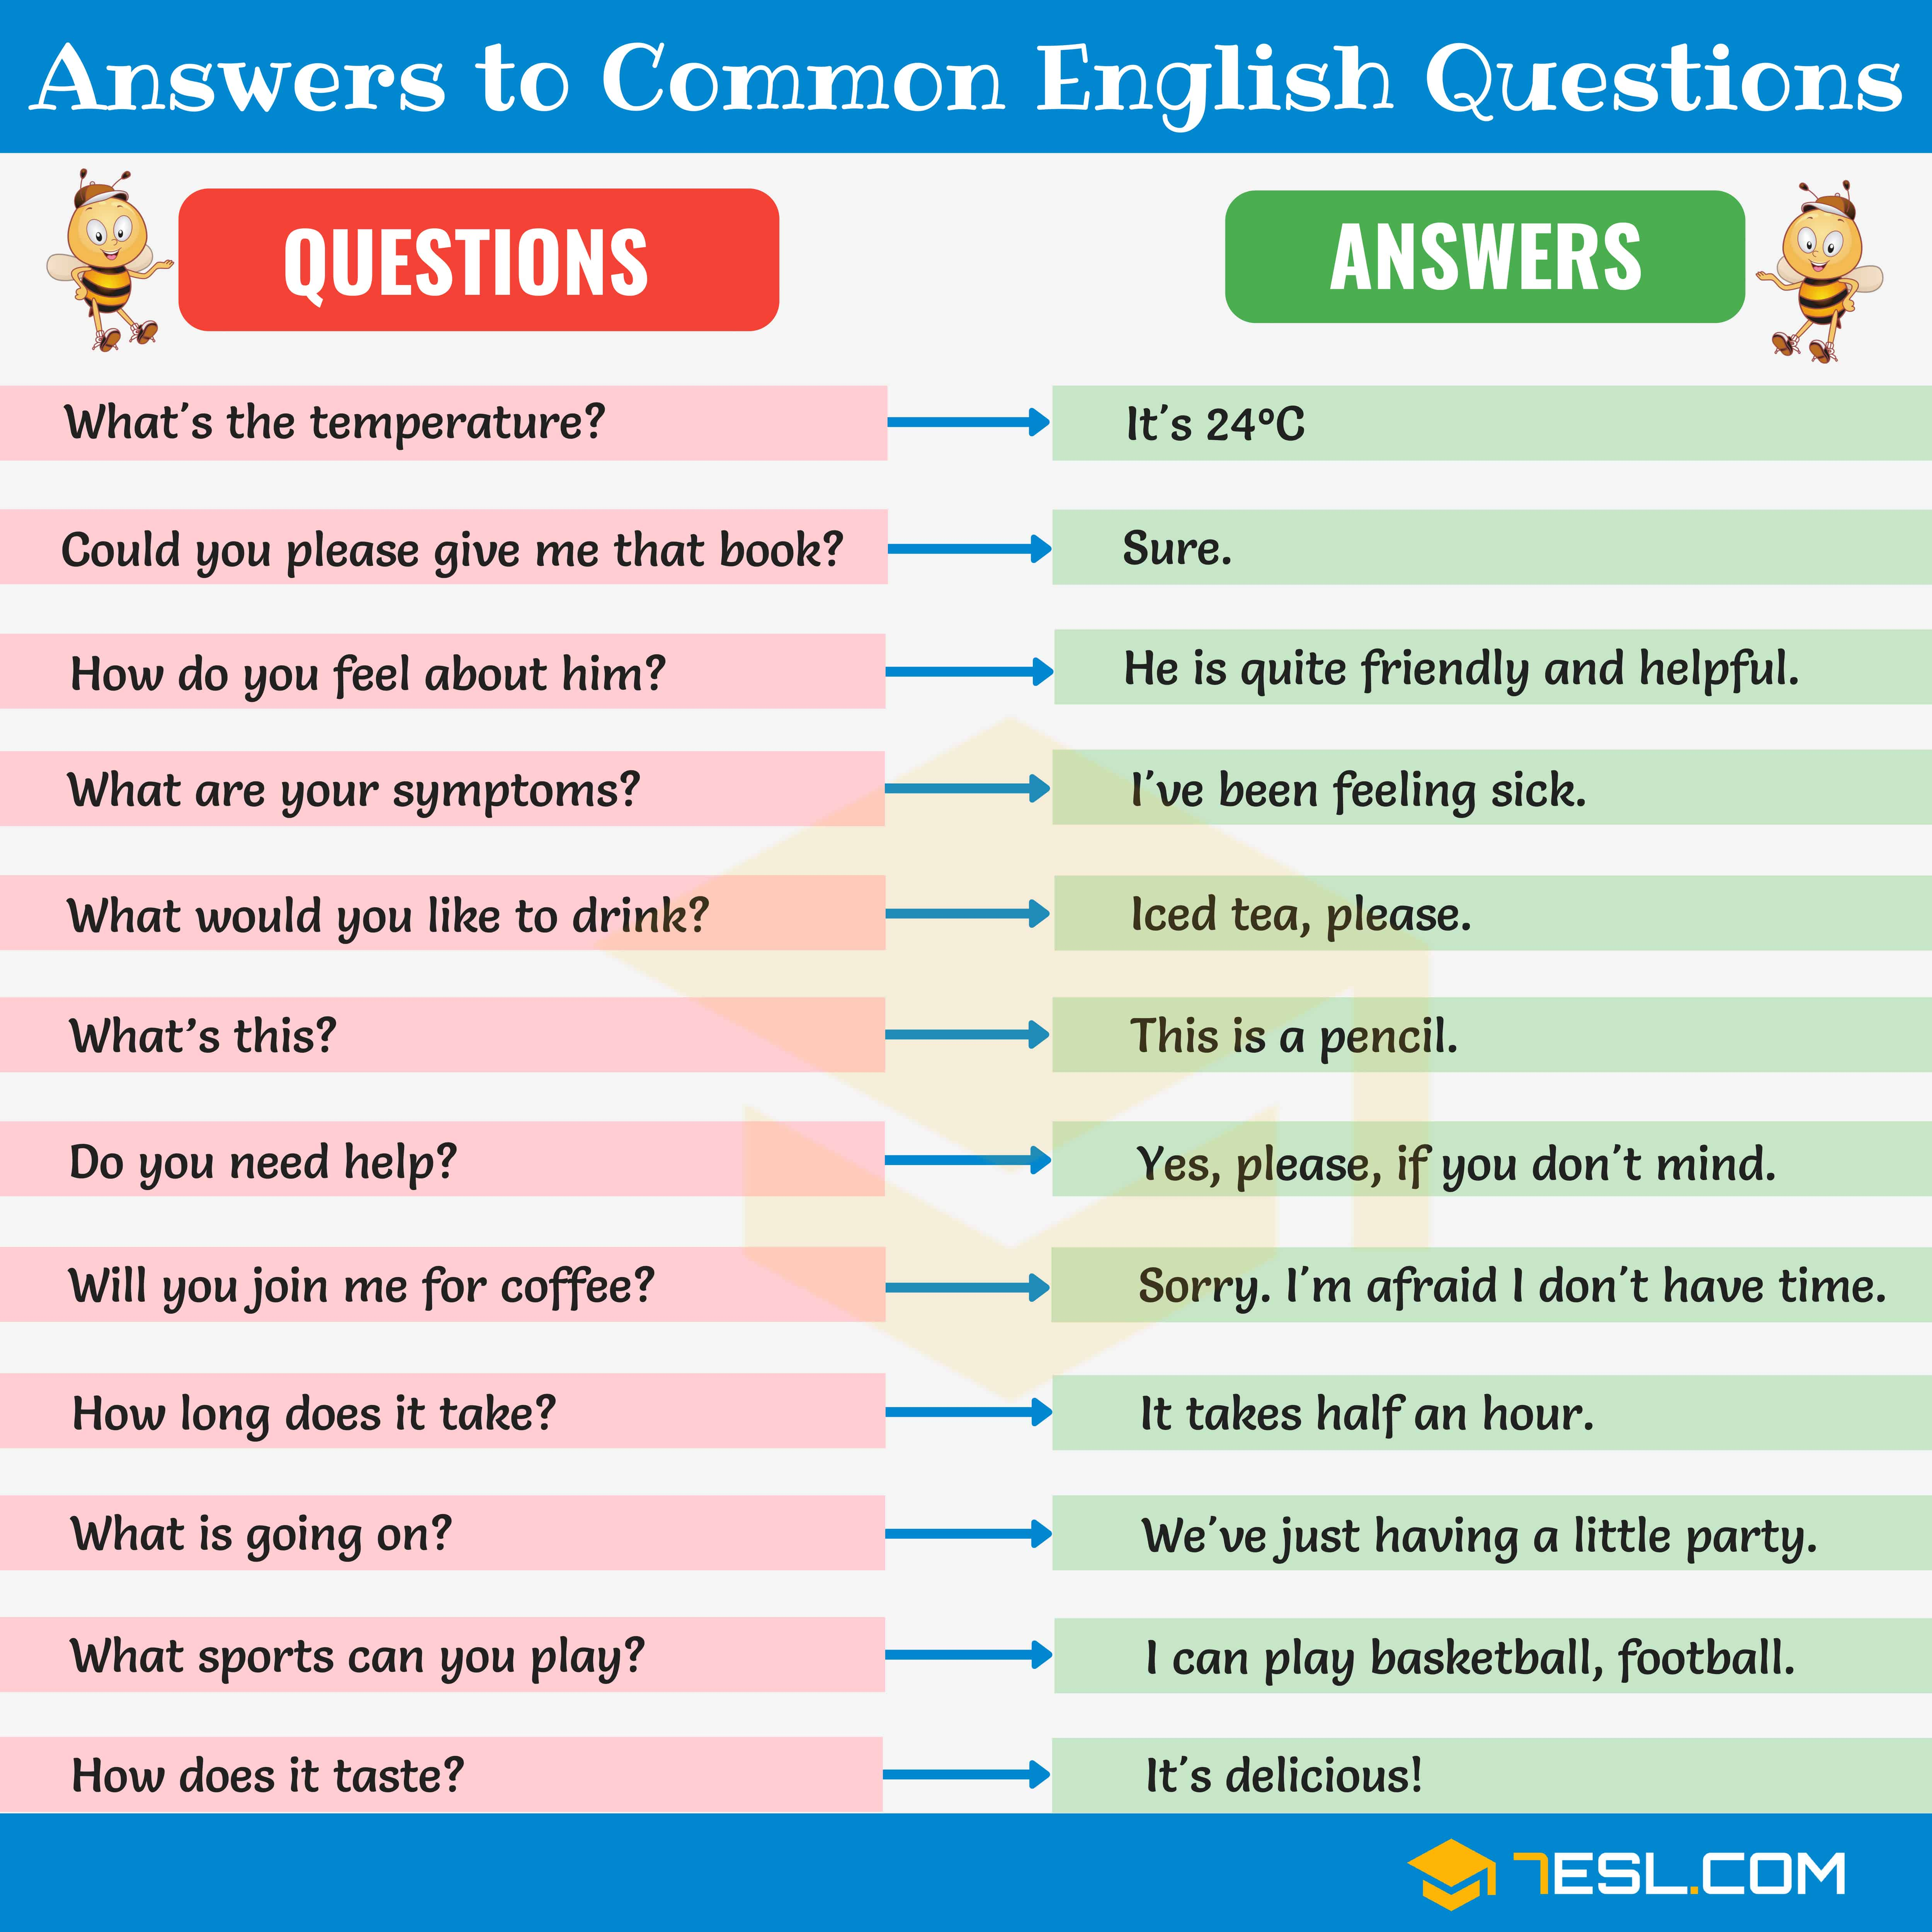 Answers to Common English Questions